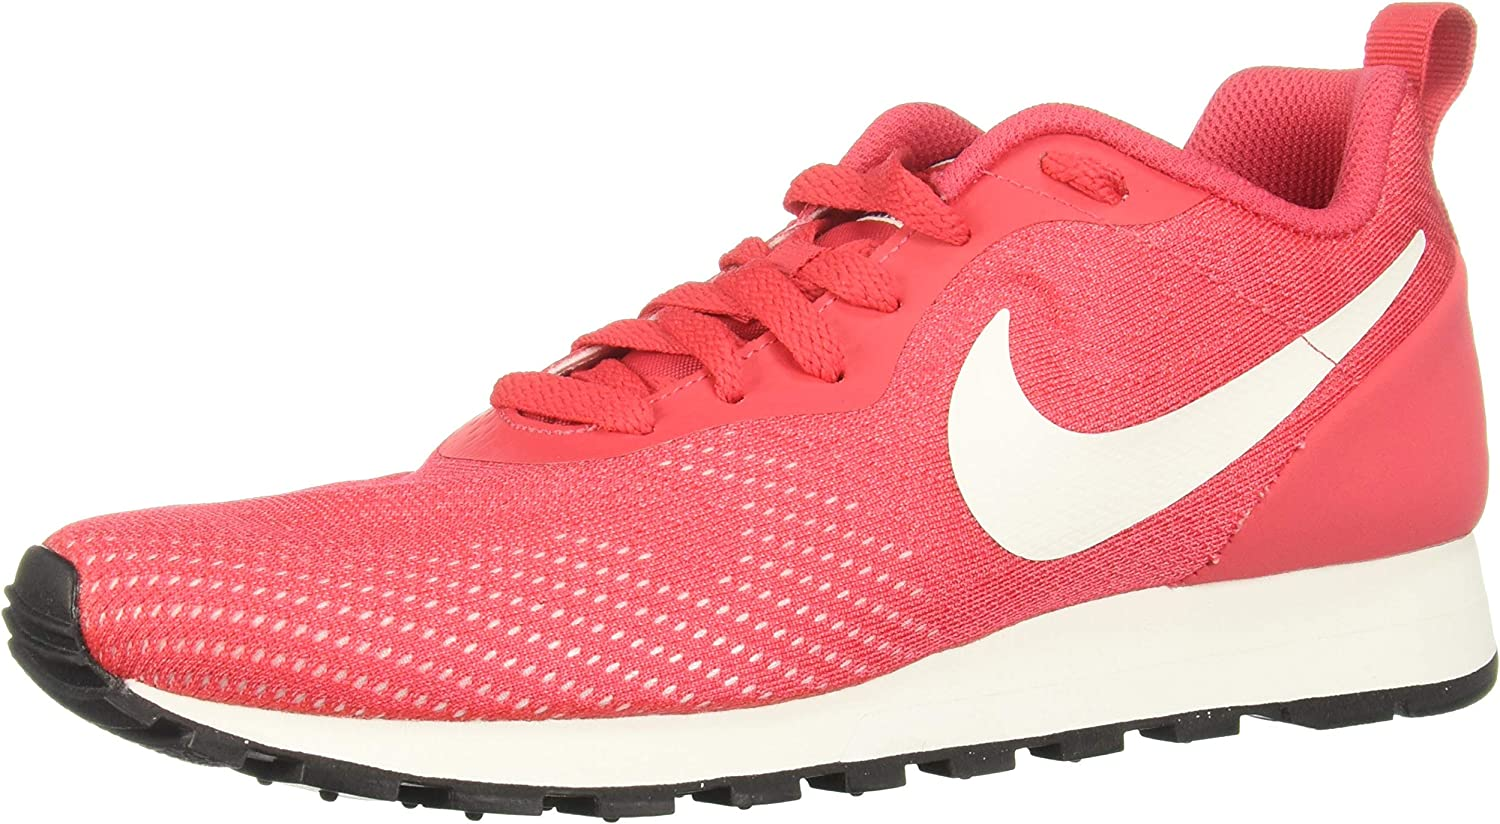 Nike Women's Md Runner 2 Eng Mesh Ankle-High Fabric Running shoes